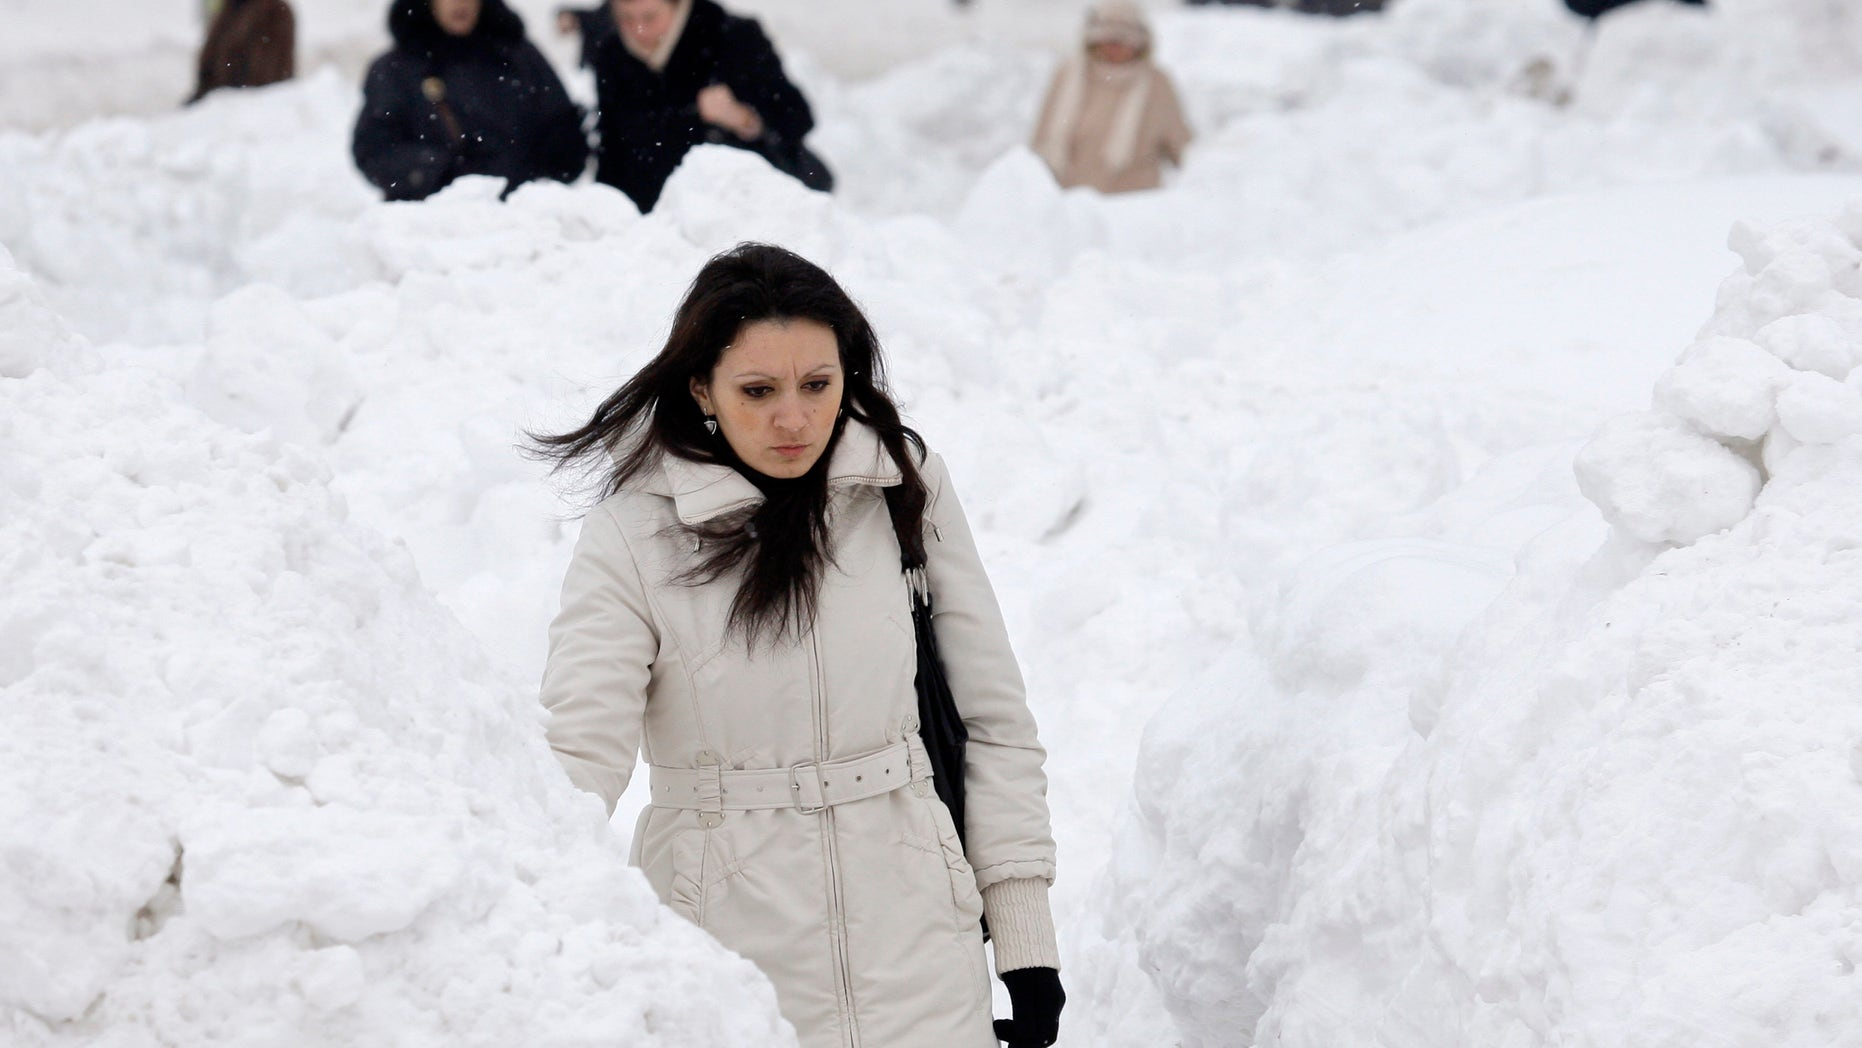 Feb. 6, 2012: A woman makes her way through a snow covered street in Sarajevo.